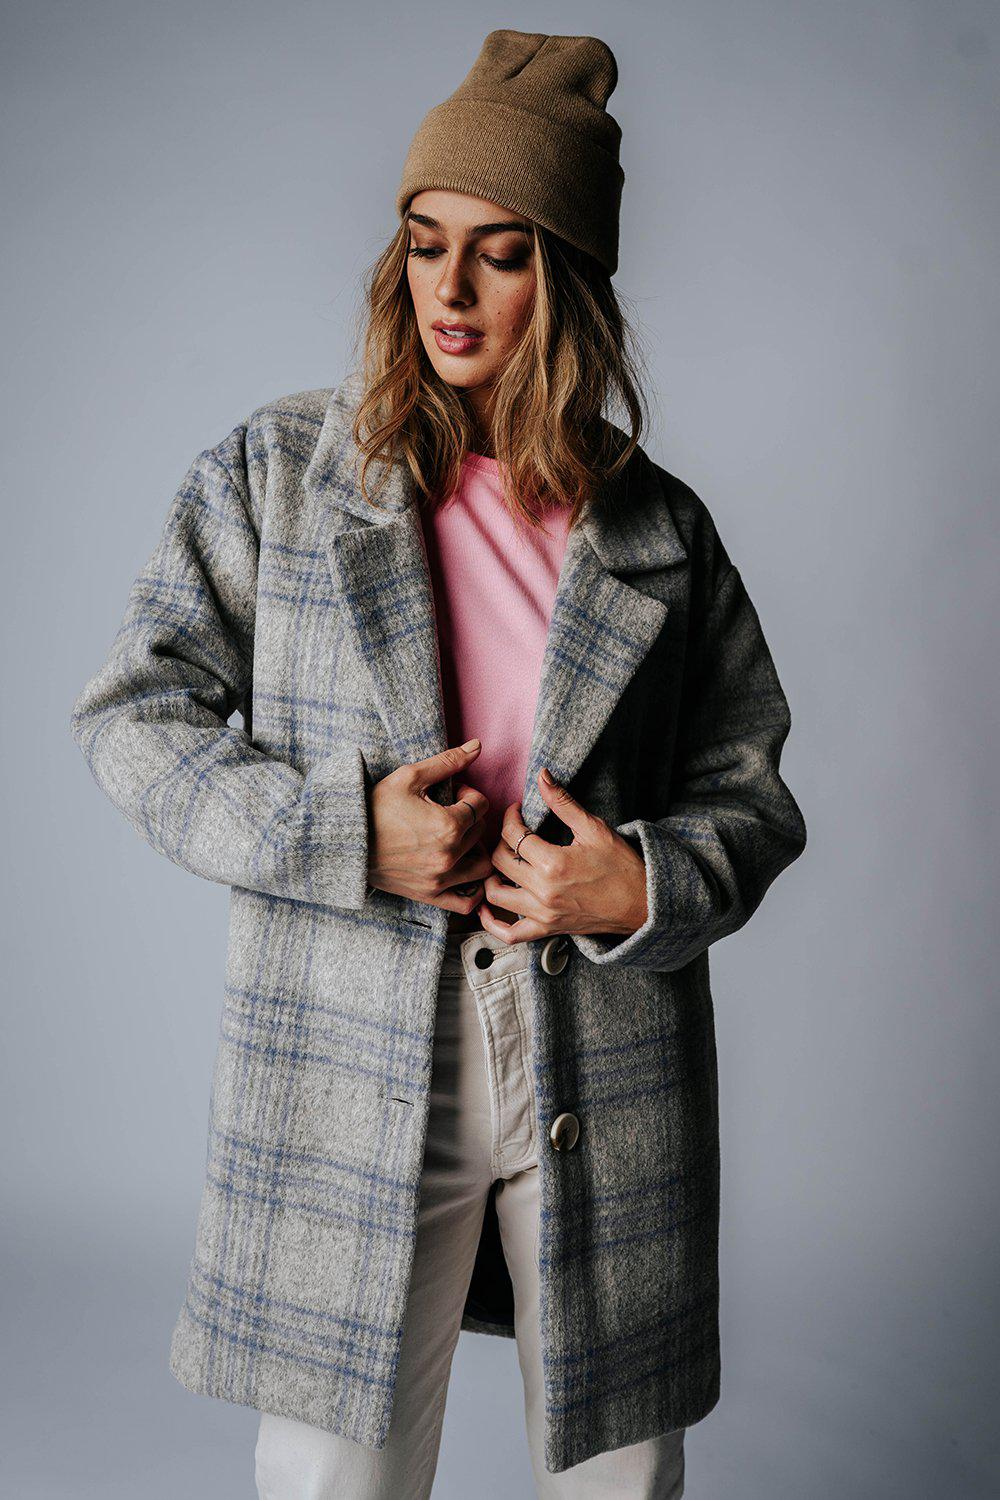 best_seller, City Slicker Plaid Coat in Grey Combo - FINAL SALE, Top, women's clothing, dresses, skirts, coats, jackets, shoes, boots, tops, tee shirts, jeans, free people, levi's, rollas, jumpsuits, bottoms, tops, sweaters, pullovers, pants, shorts, sweats,.